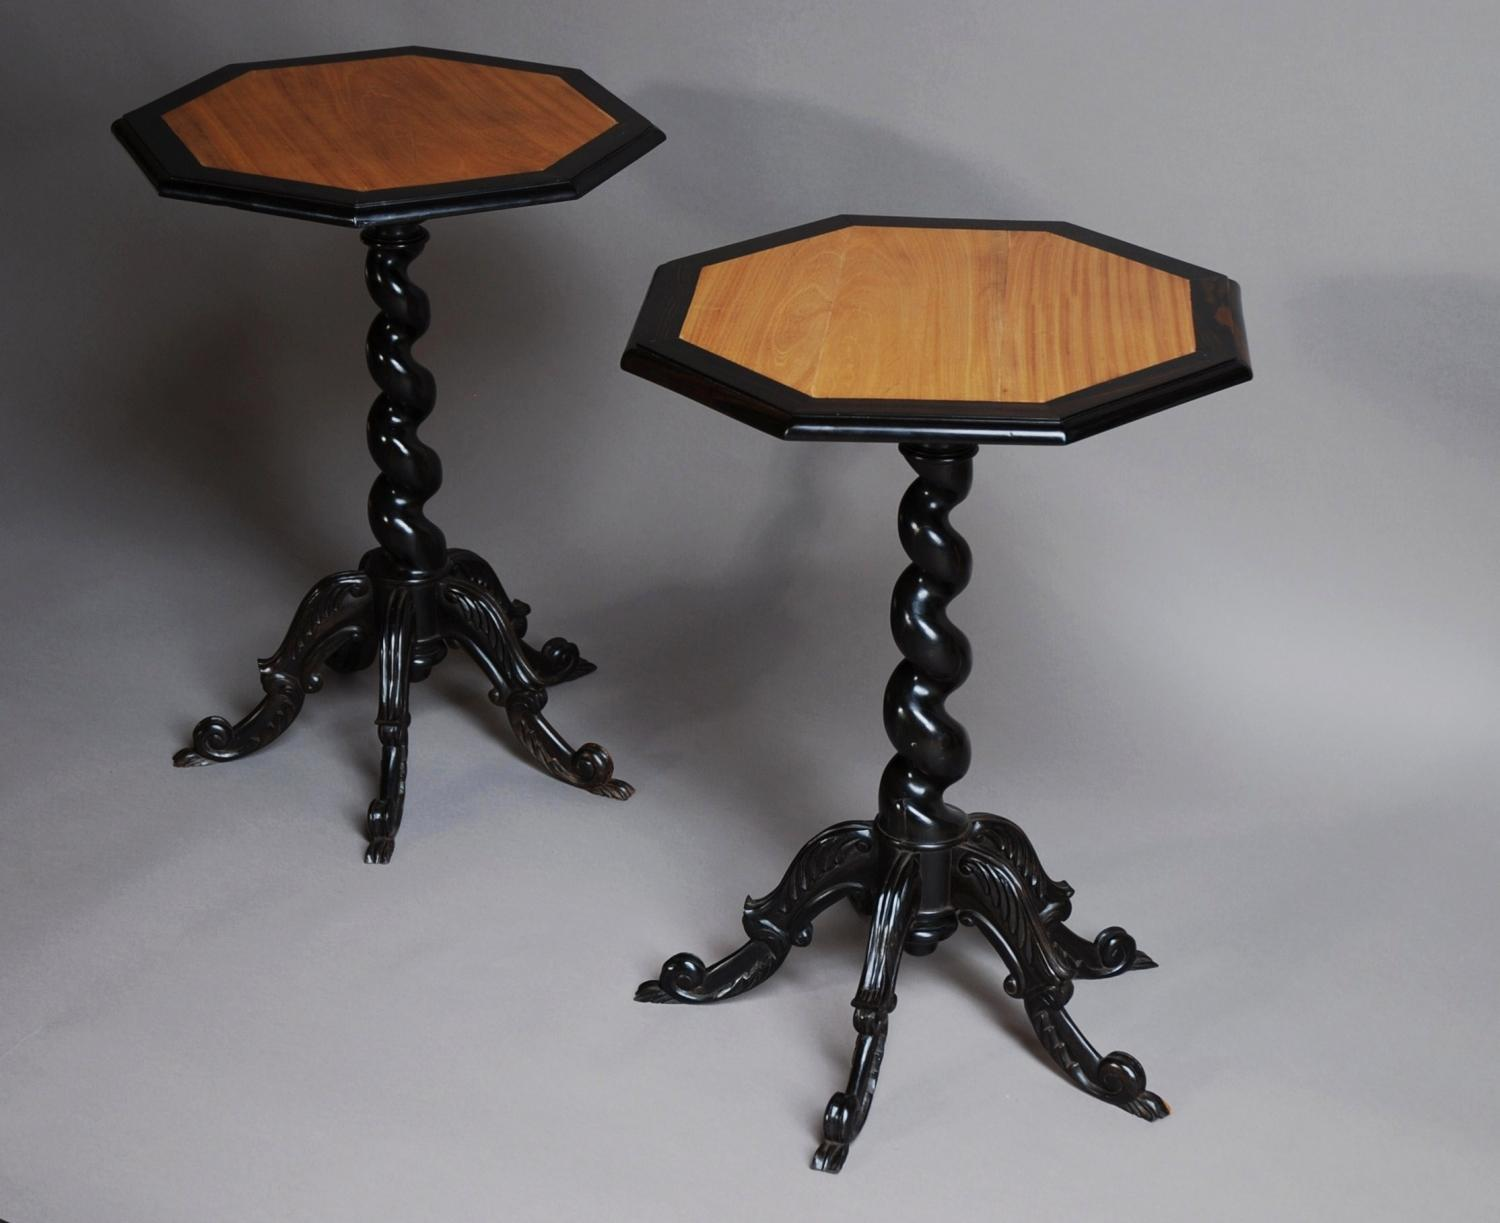 Pair of Ceylonese ebony & satinwood tables